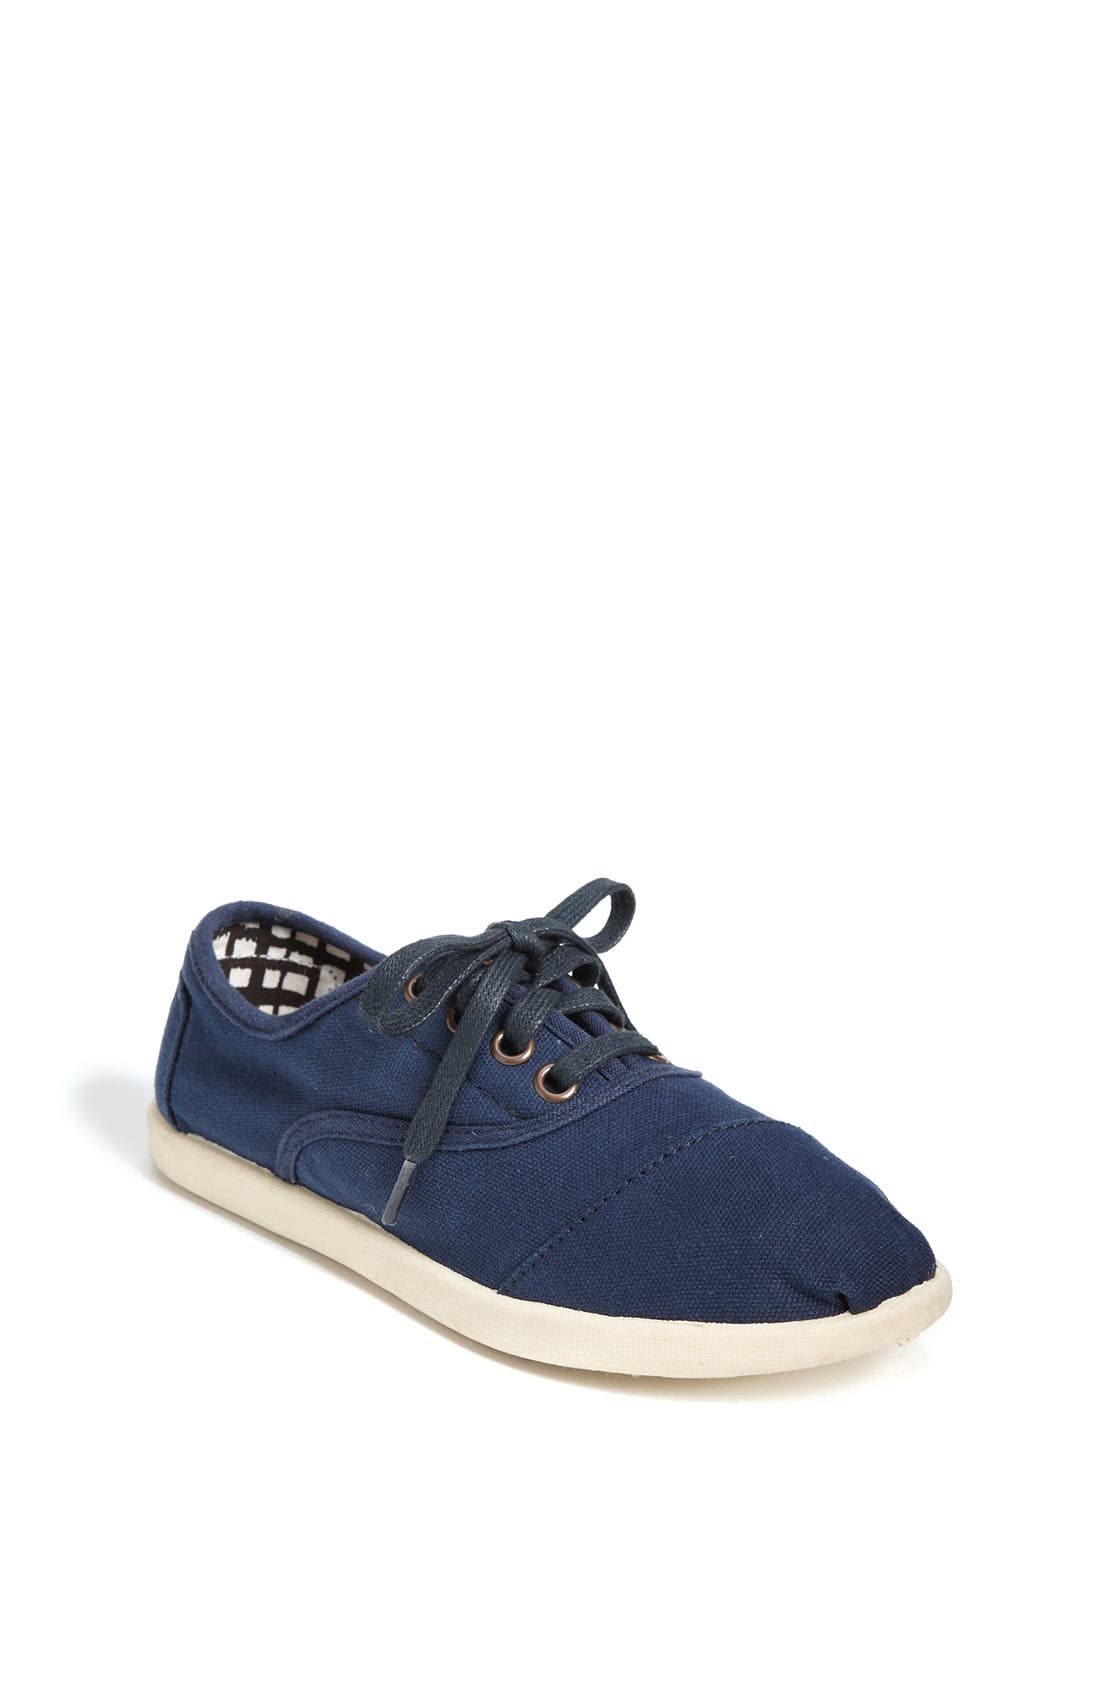 Alternate Image 1 Selected - TOMS 'Cordones - Youth' Canvas Slip-On (Toddler, Little Kid & Big Kid)